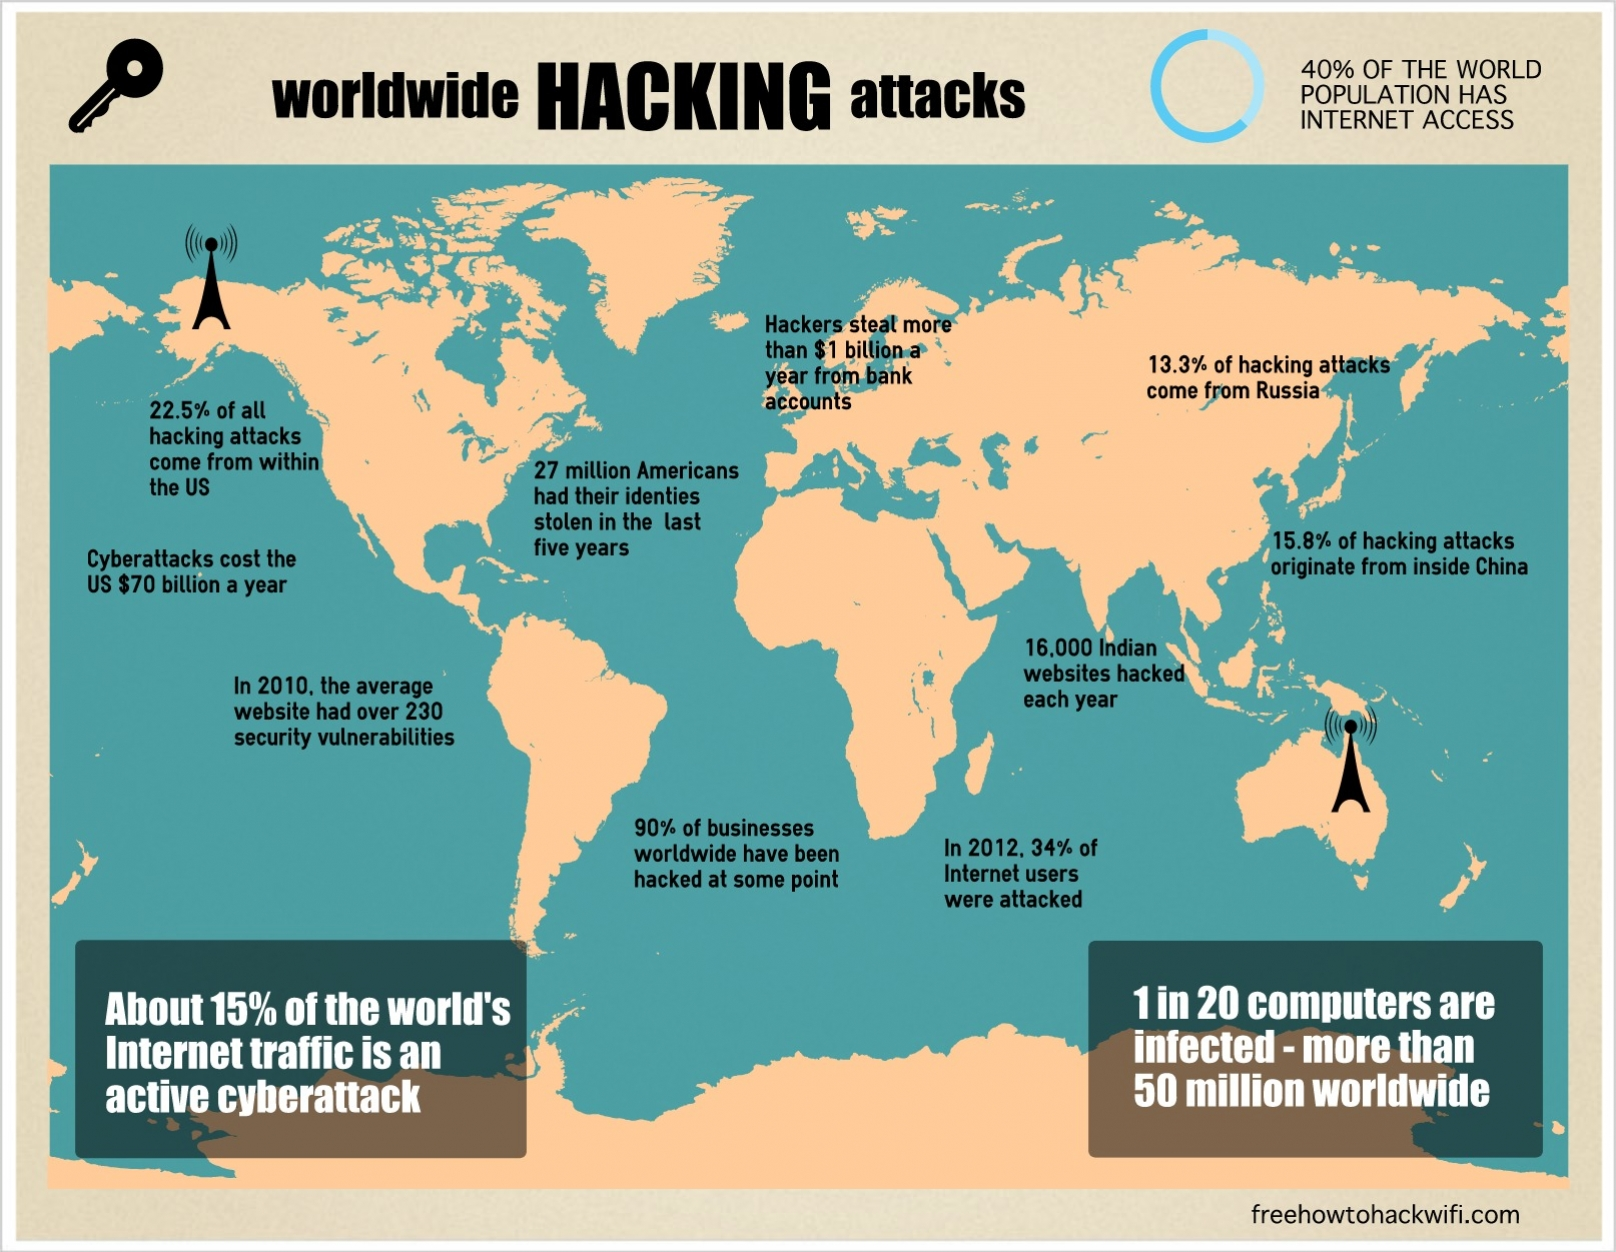 worldwide-hacking-attacks_5273179abe4a3